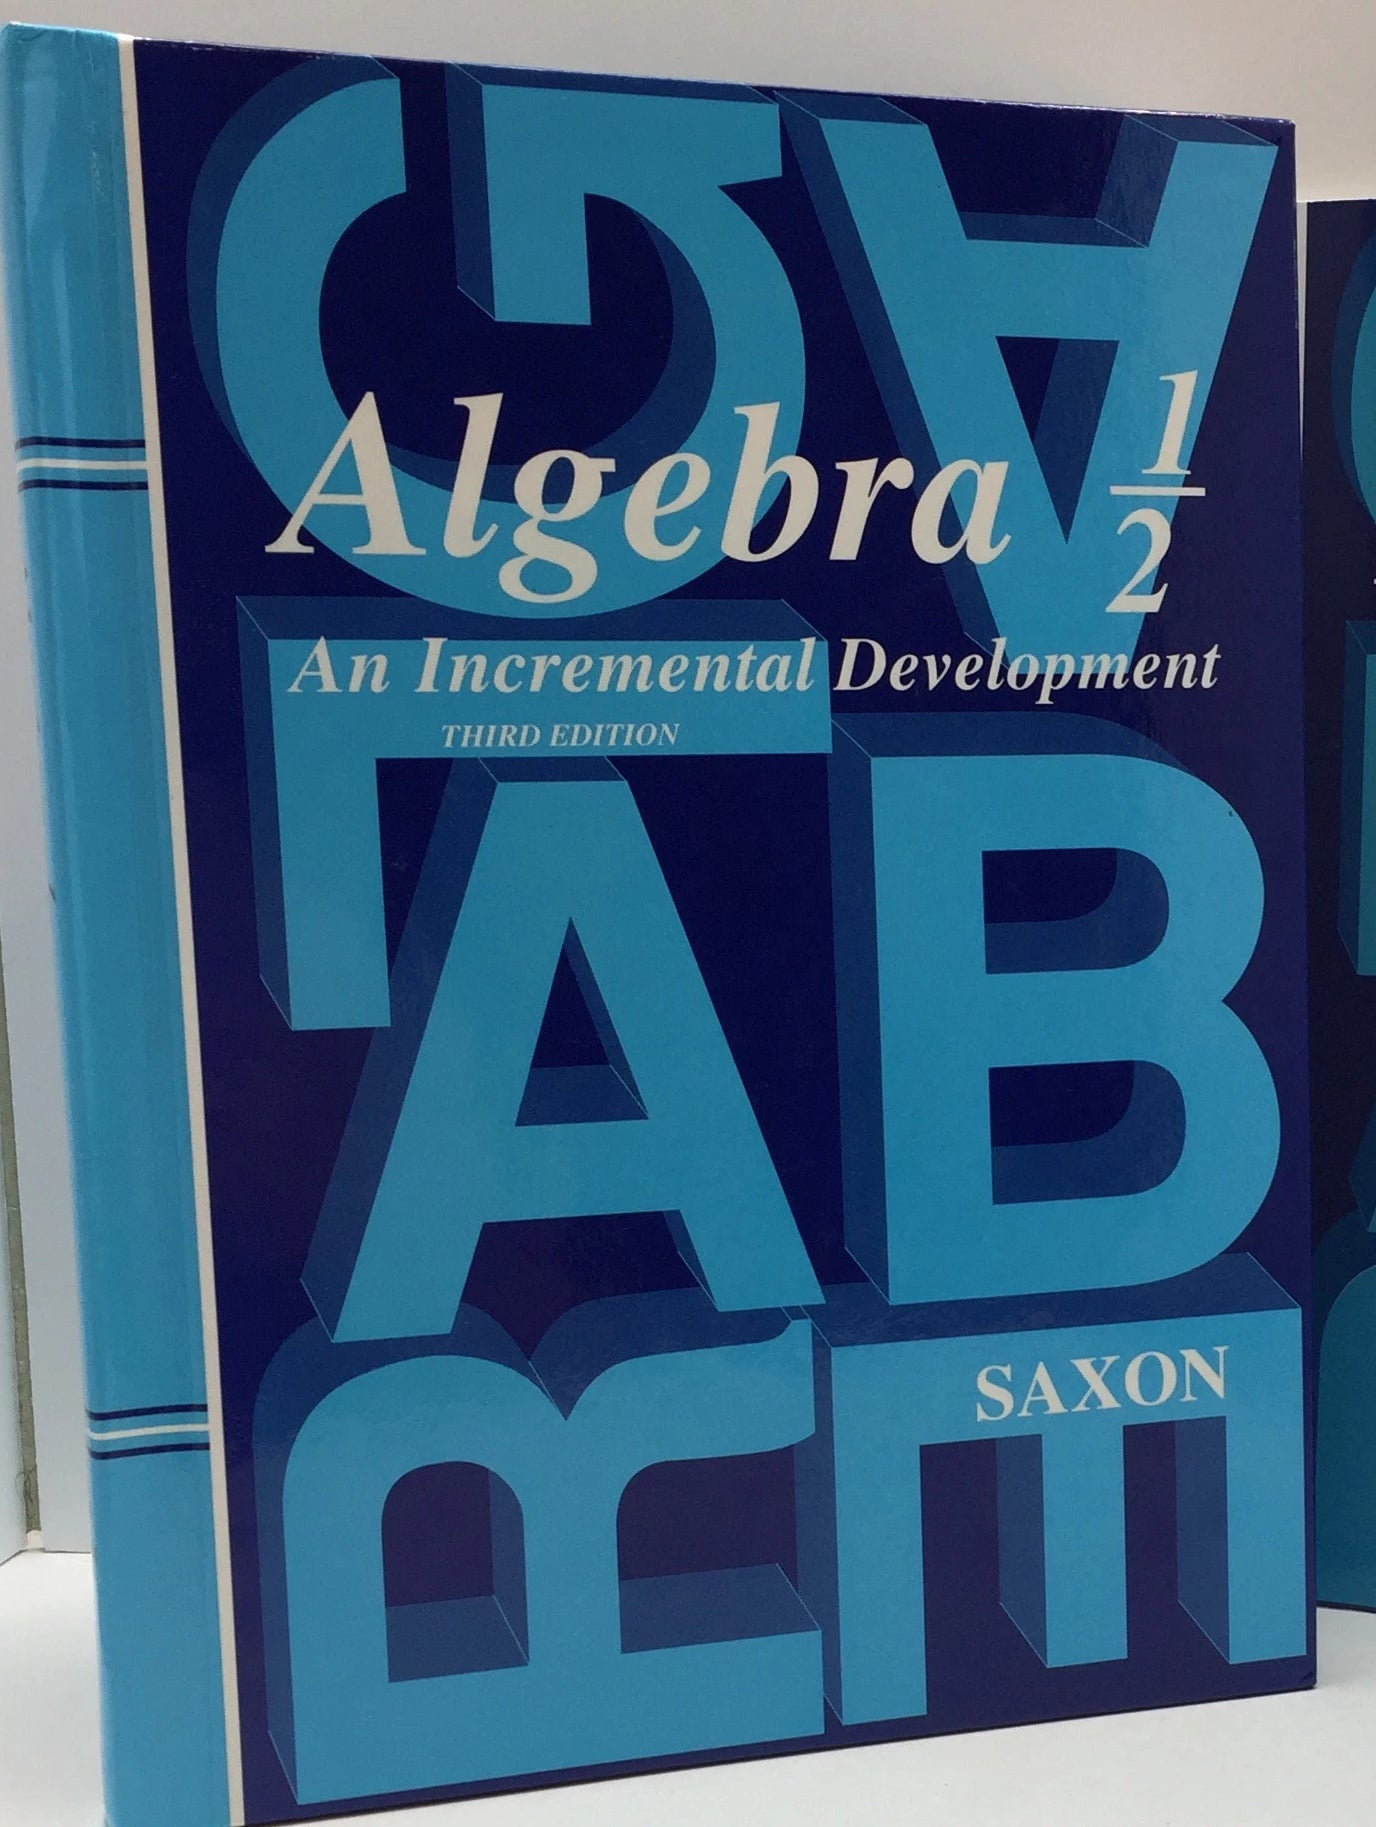 Saxon Algebra 1/2 Student Book(3rd Edition) (Used-Good) - Little Green Schoolhouse Books